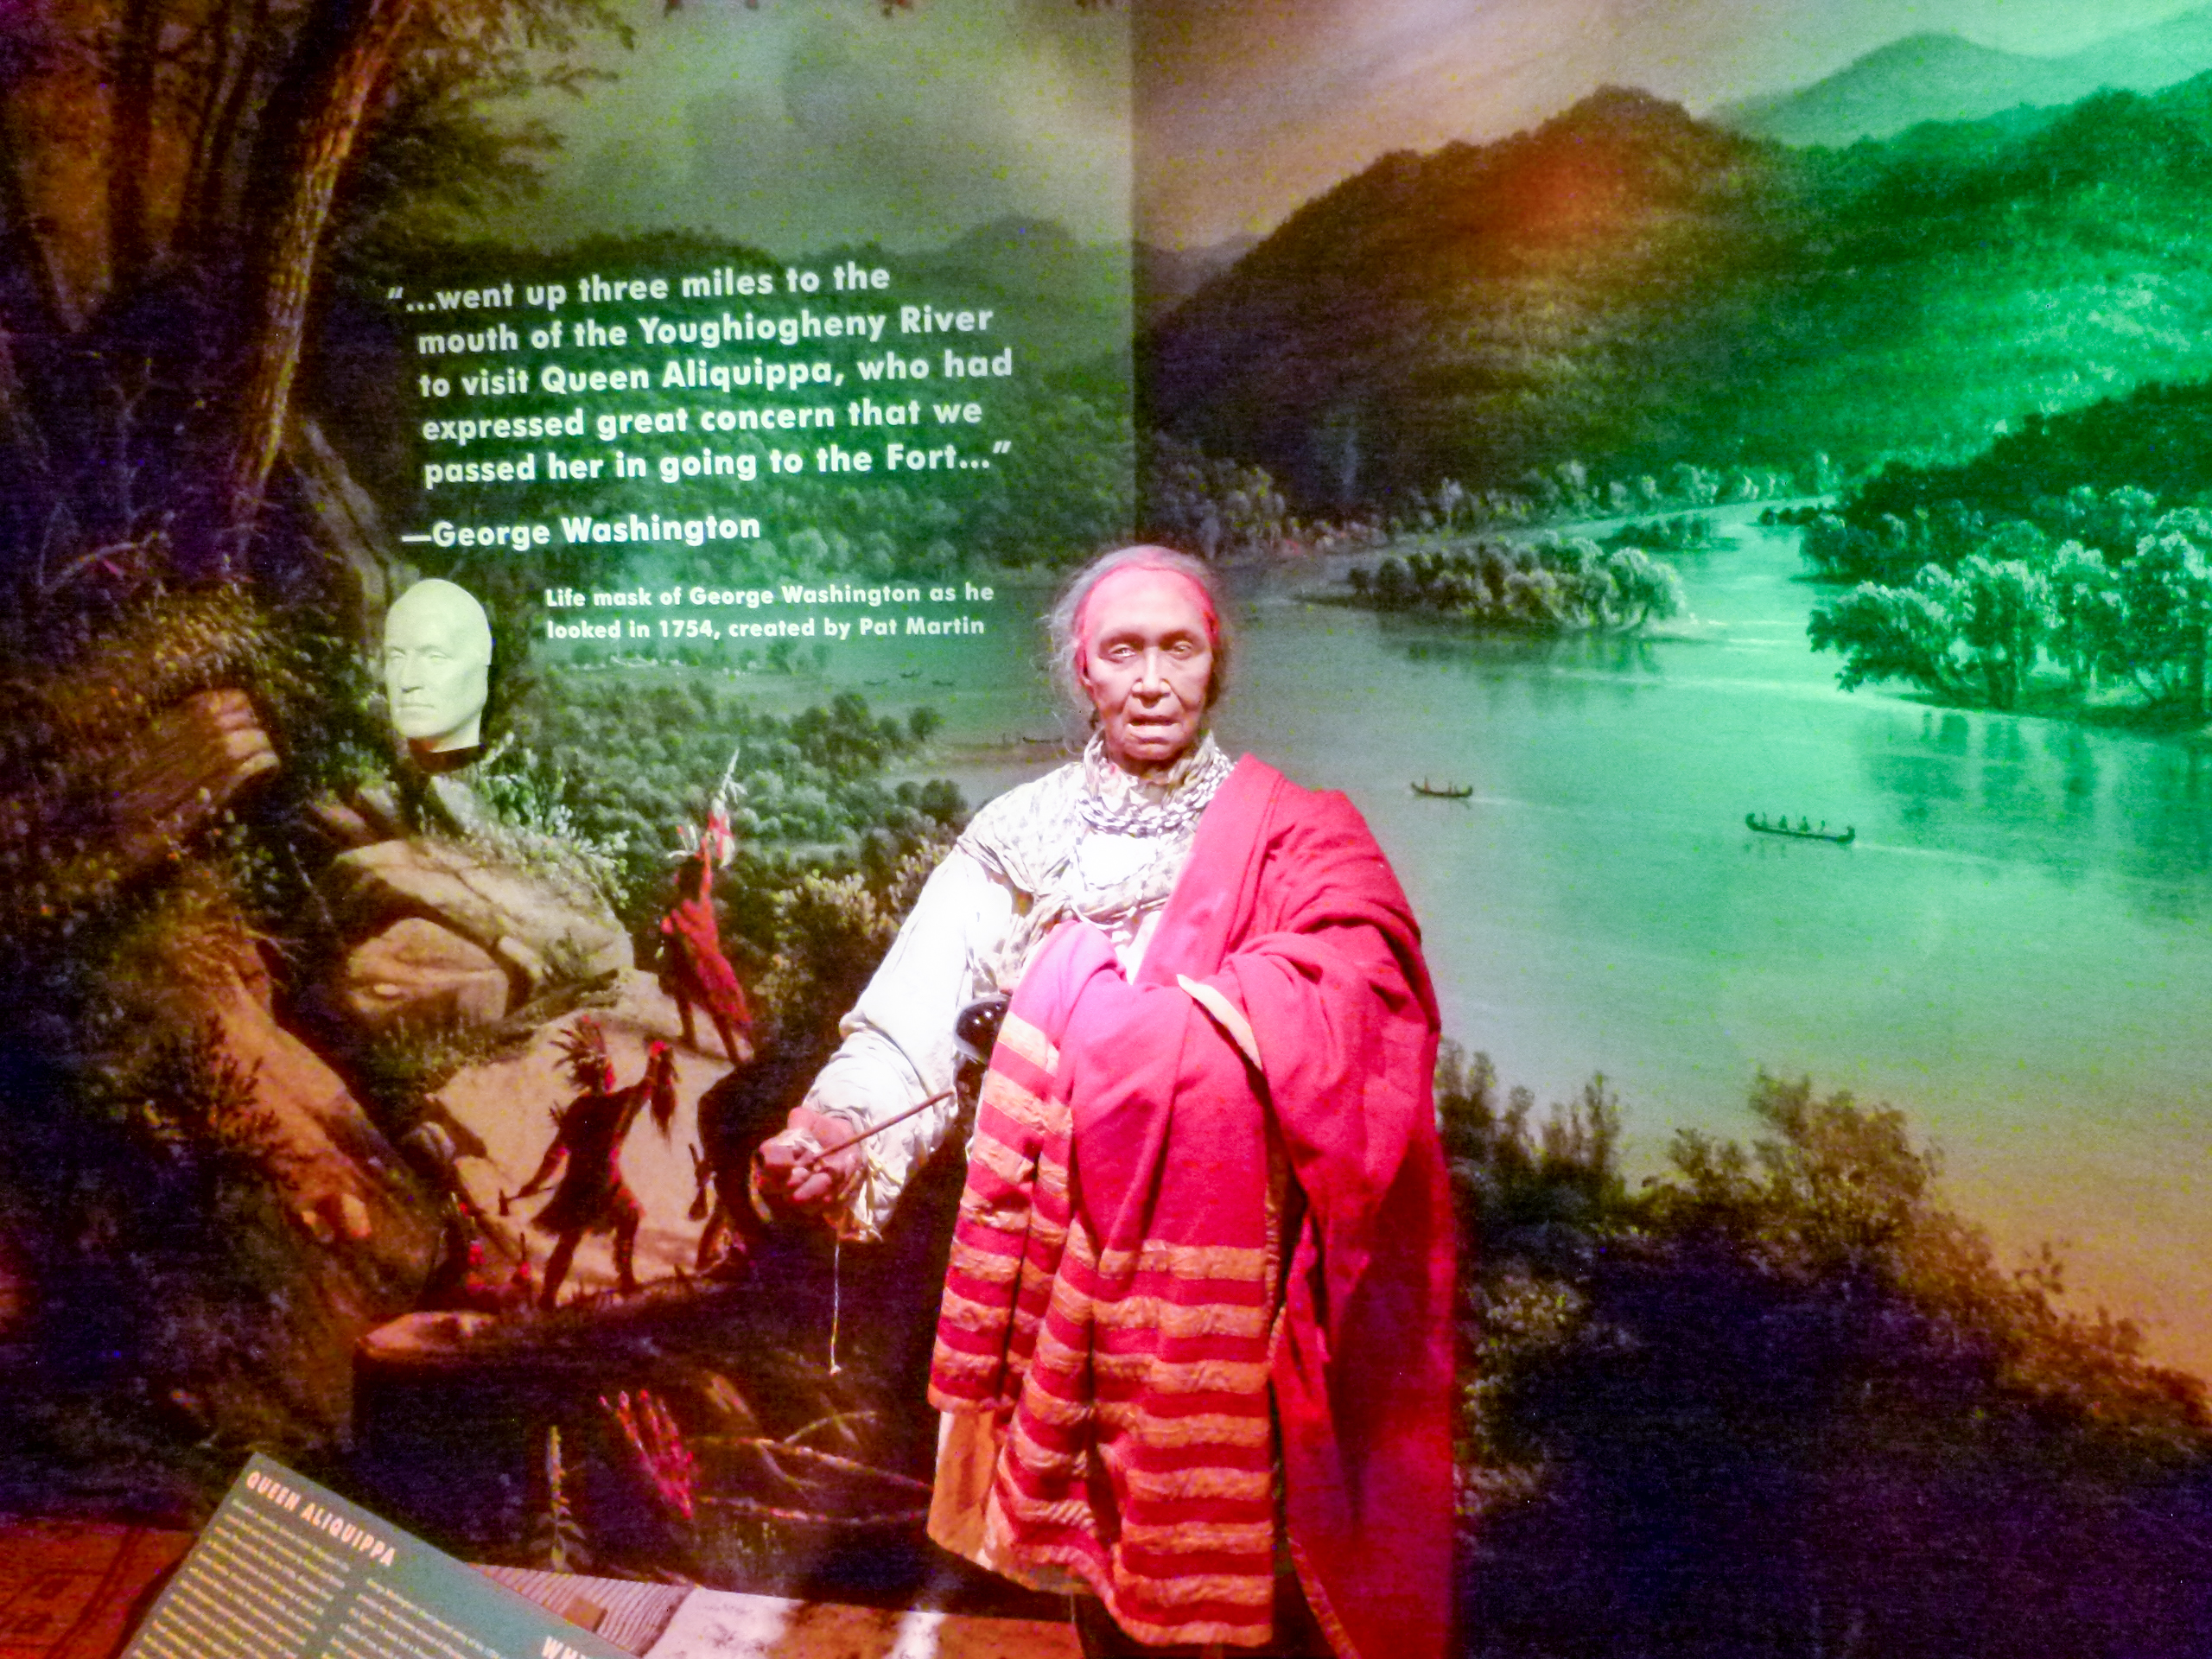 It's good to remember that the first residents of the region were Native Americans (many of whom still reside here). Seen here is the figure of Queen Aliquippa and a life mask of George Washington as he looked in 1754.